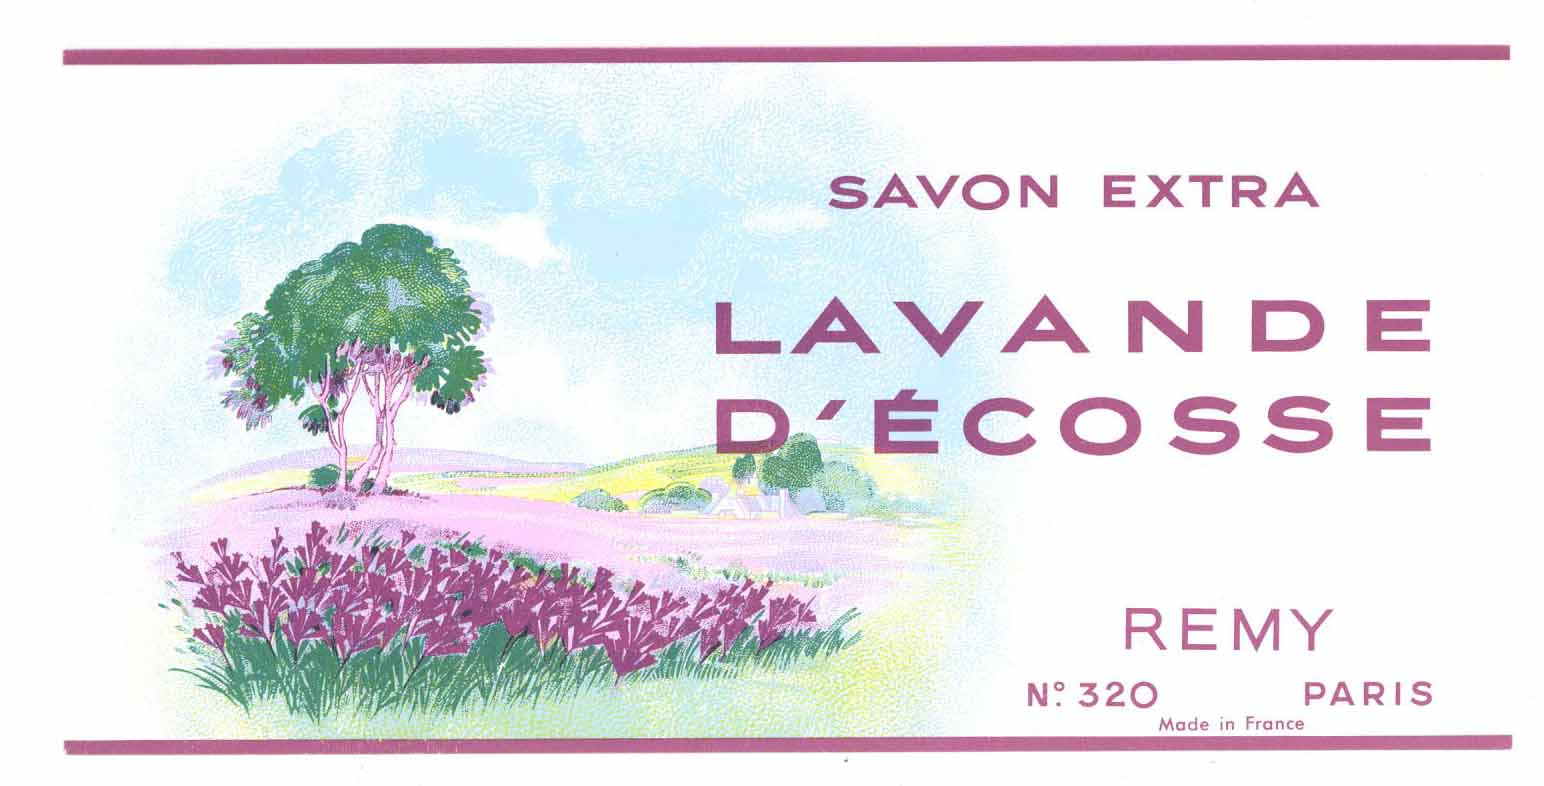 Lavande D'Ecosse Brand Vintage French Soap Label